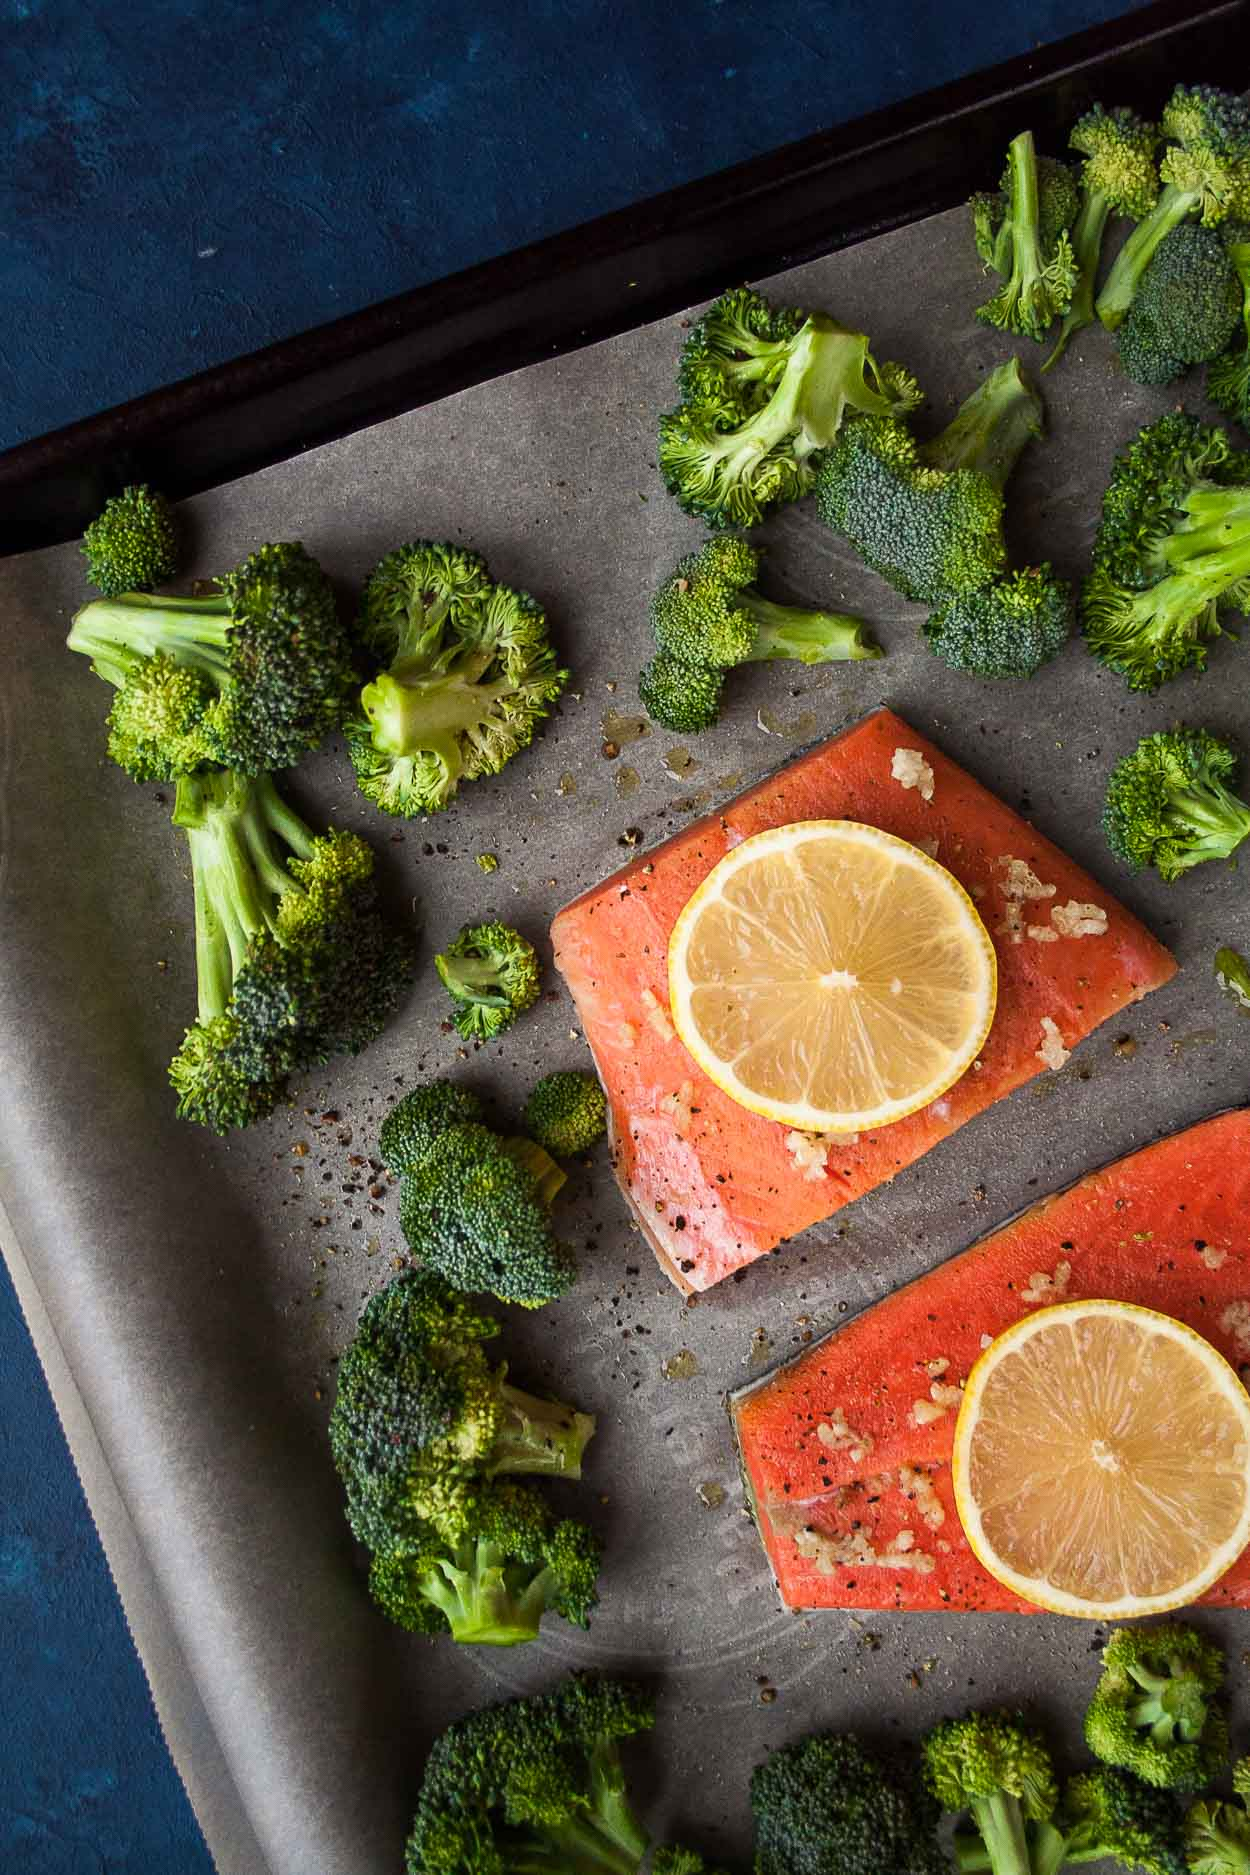 Sheet Pan Salmon Recipe with Roasted Broccoli